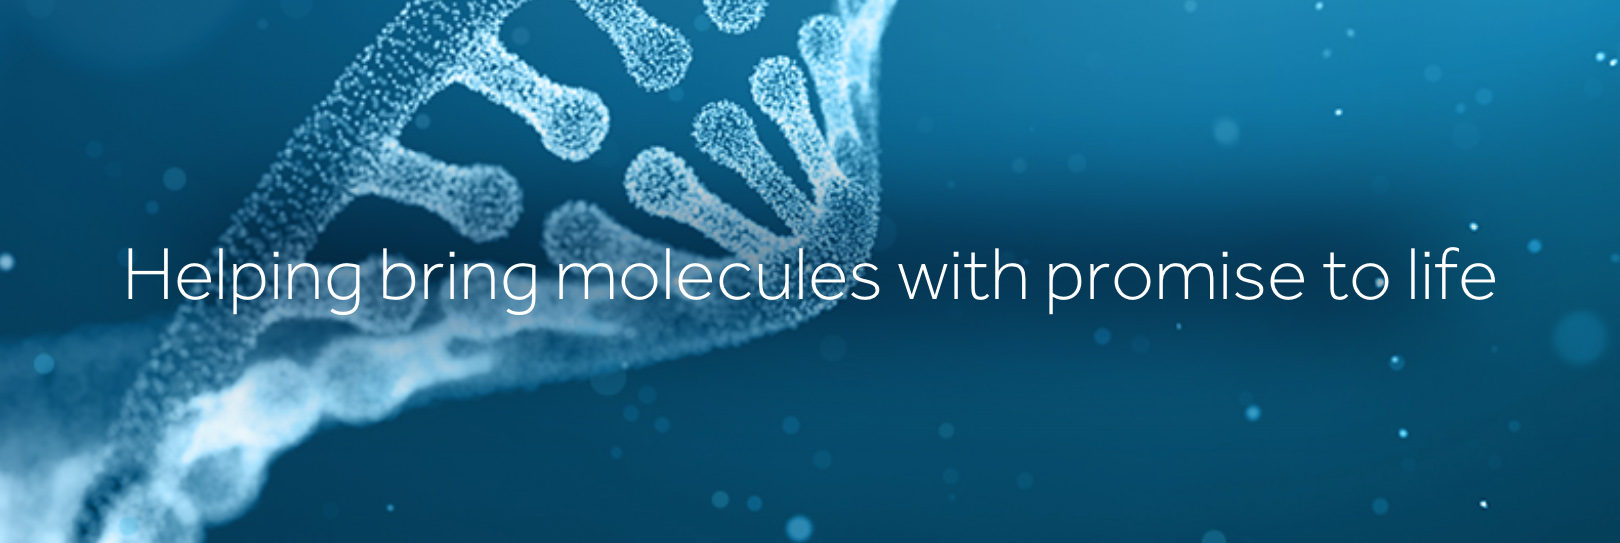 Banner image with a DNA strand and the heading 'Helping bring molecules with promise to life'